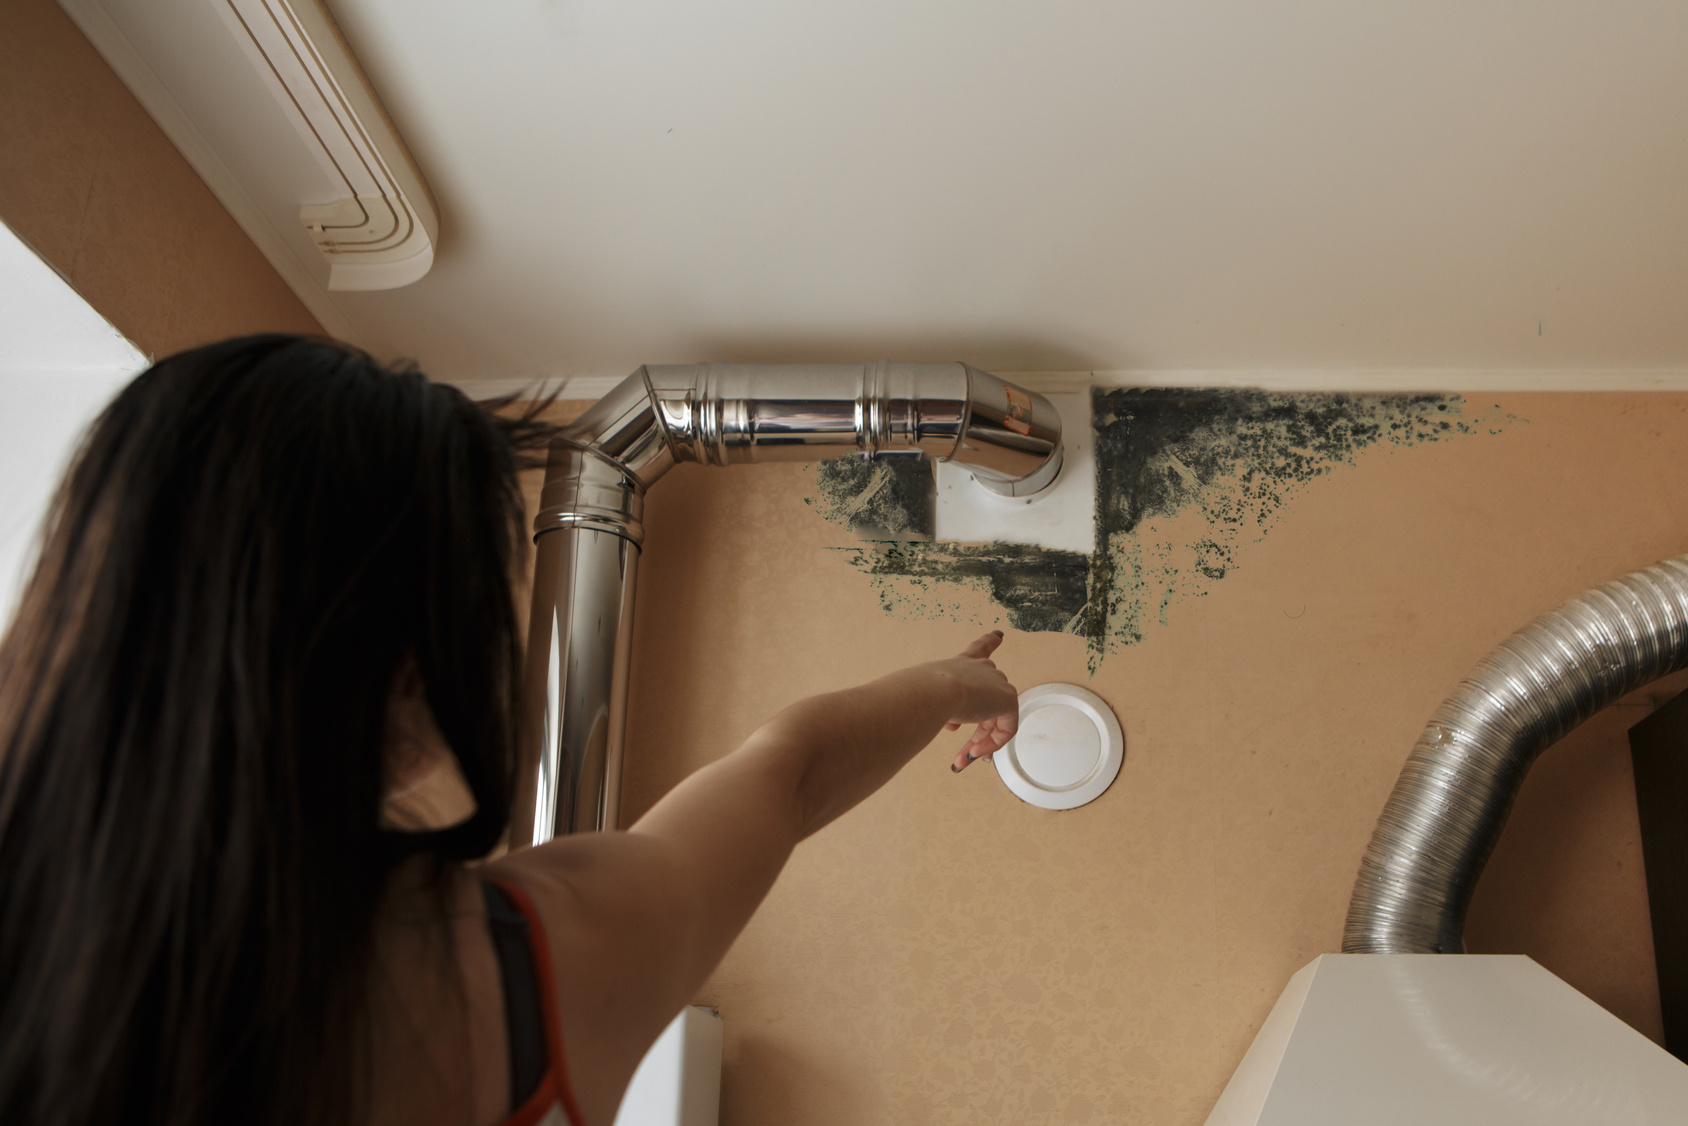 How Long Does It Take for Mold to Grow? | ServiceMaster in ...